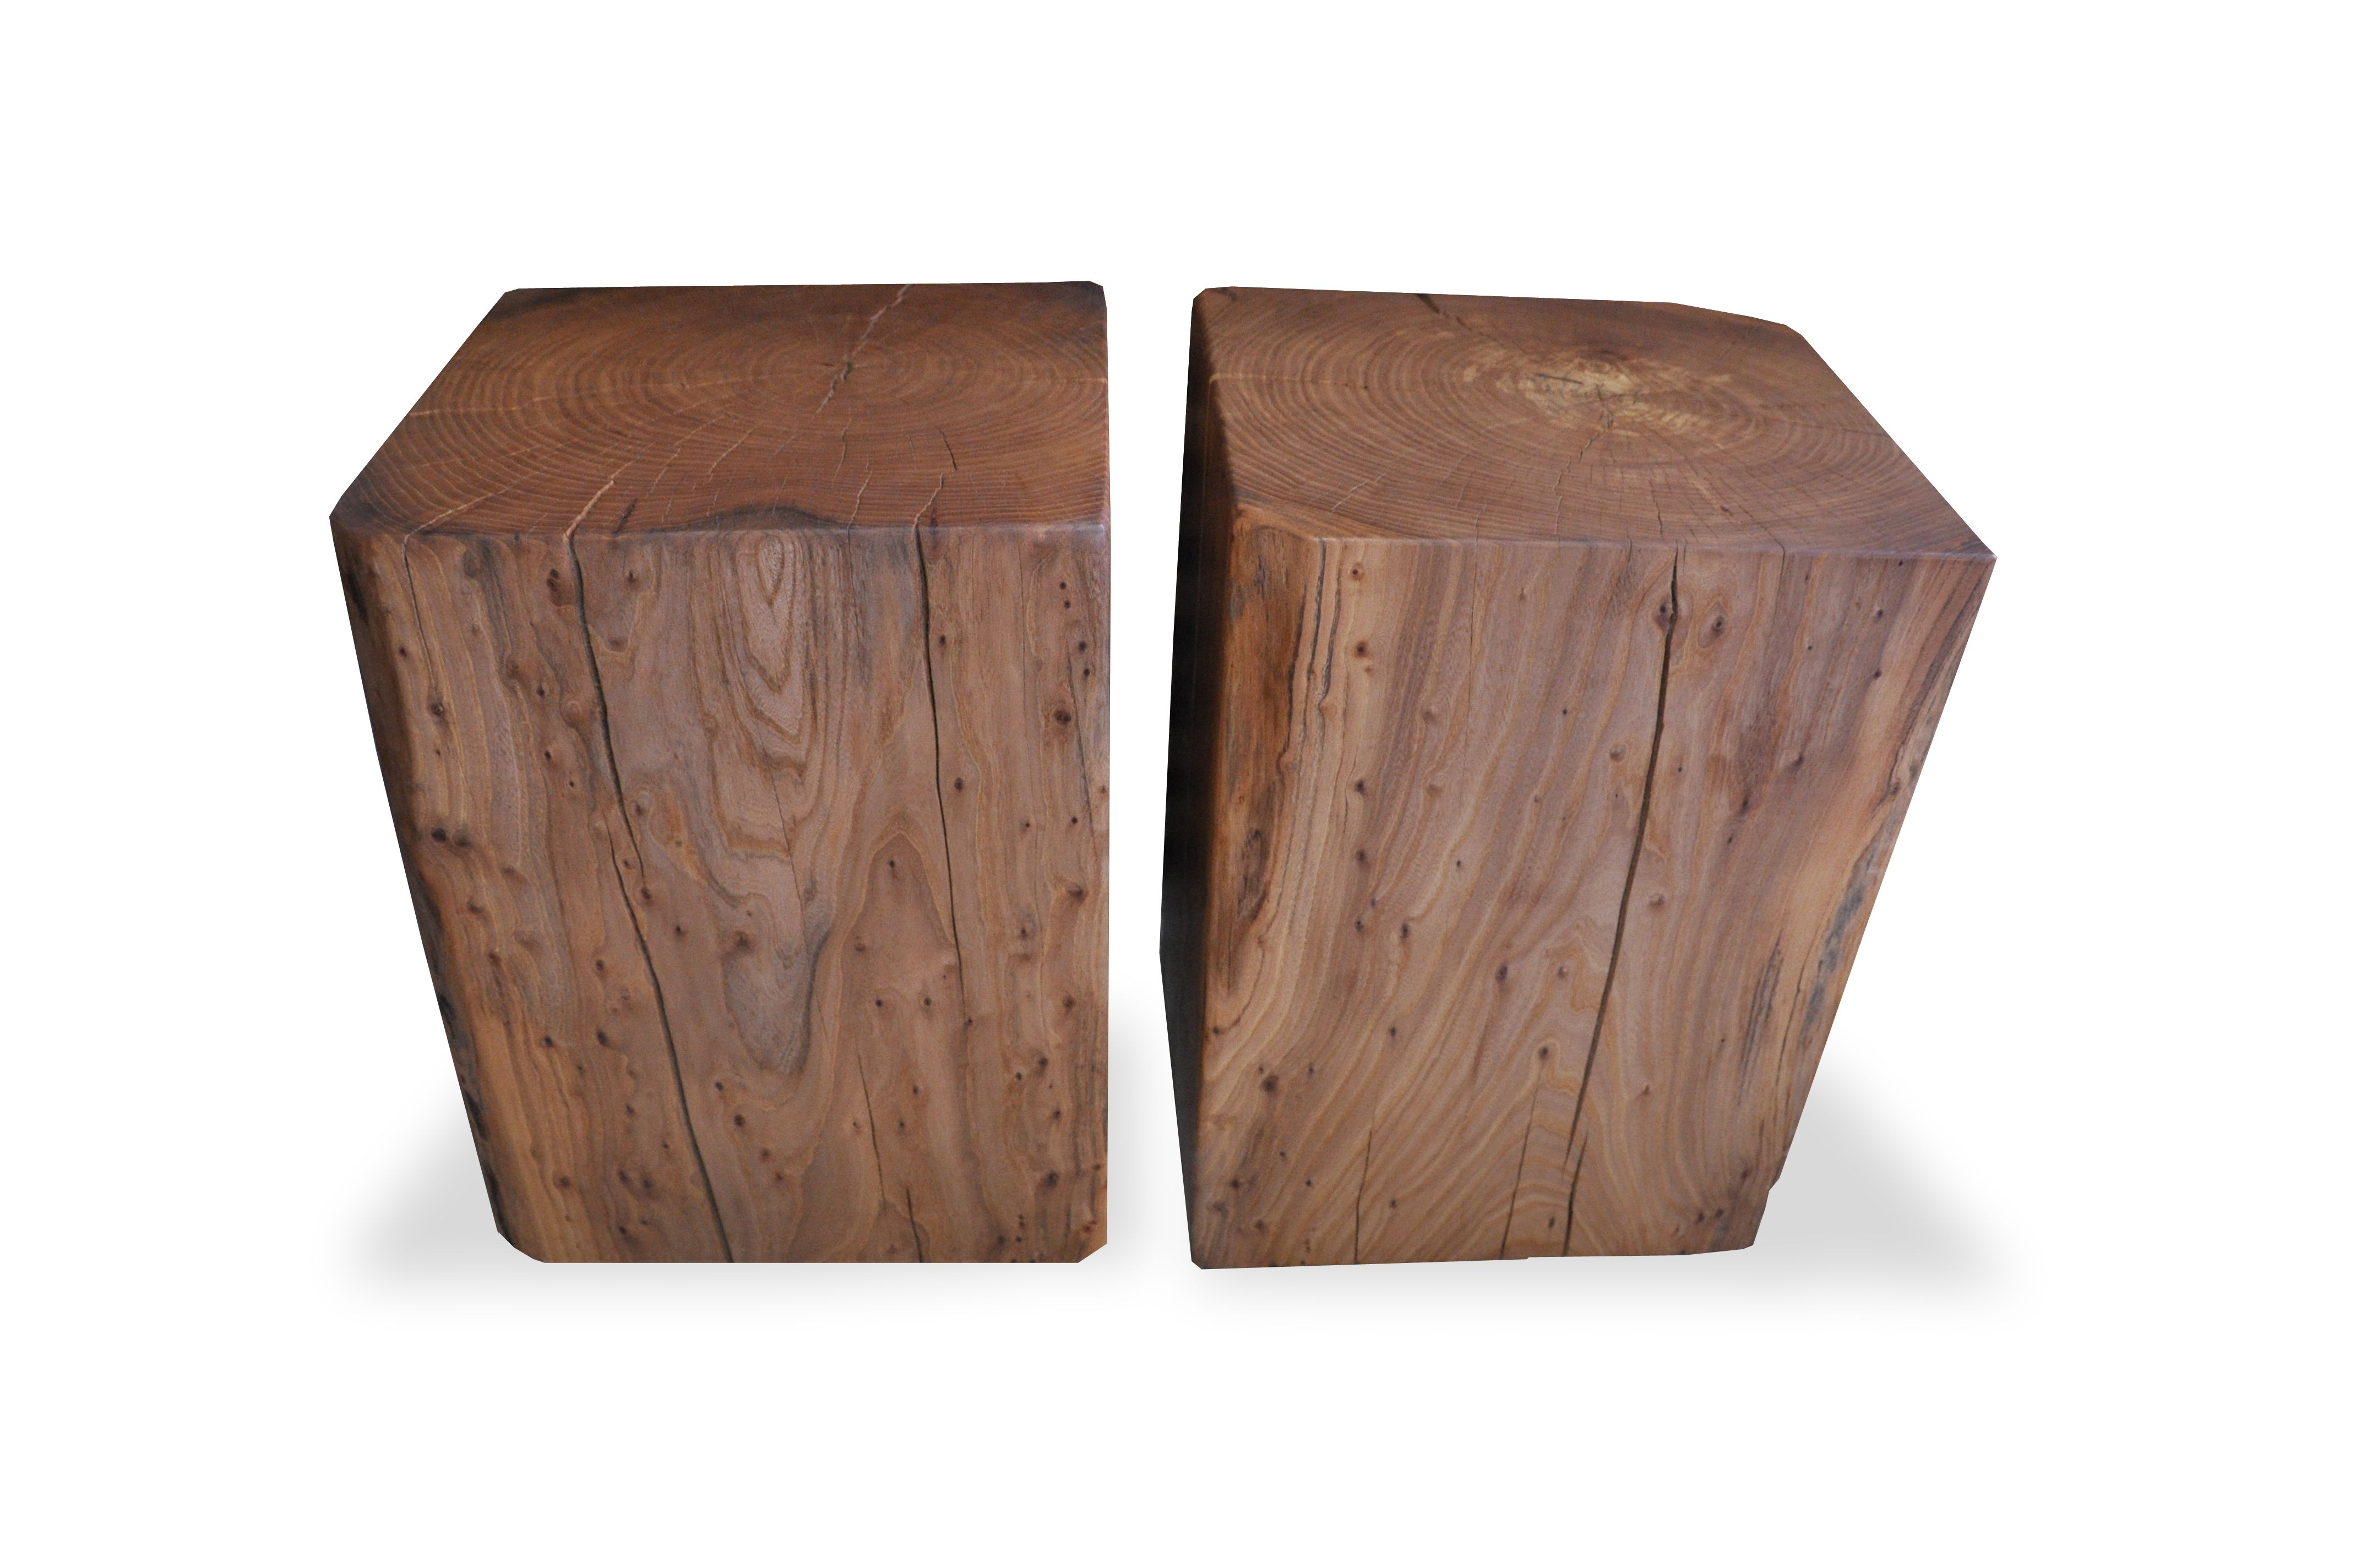 Wood Block End Tables Pin By Elisa Granof On Village Court Office Decorating